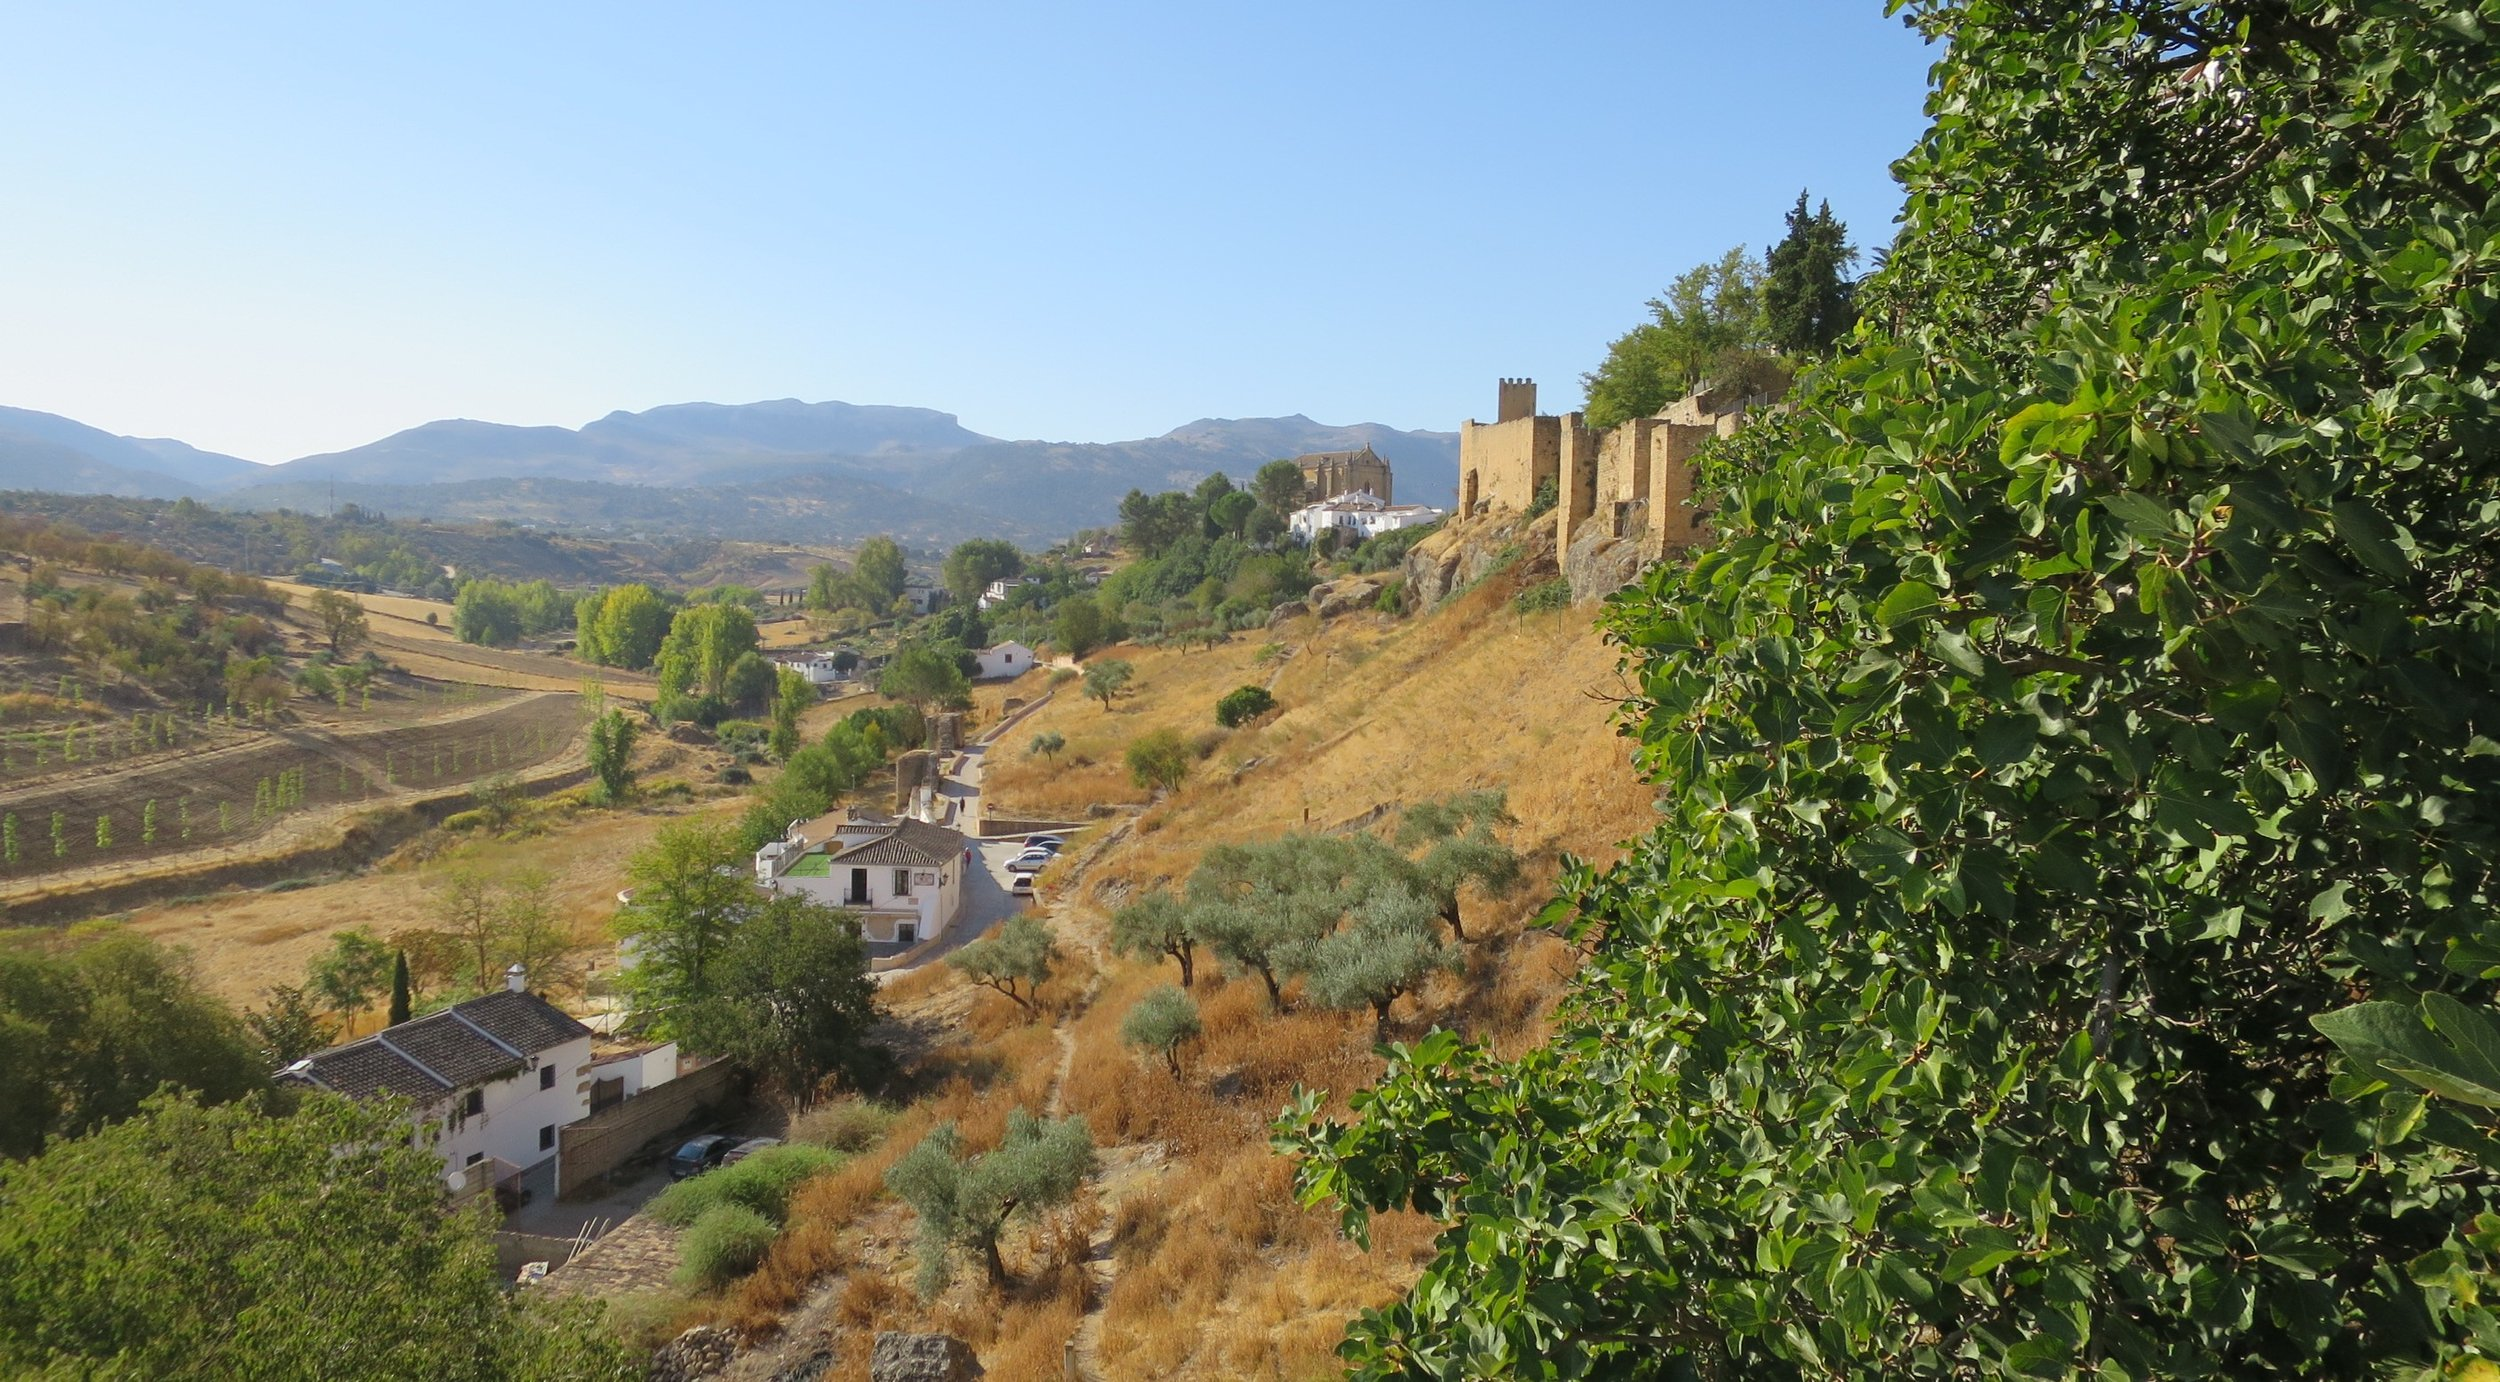 The Moorish Trail - A journey by train from Marrakech to Madrid